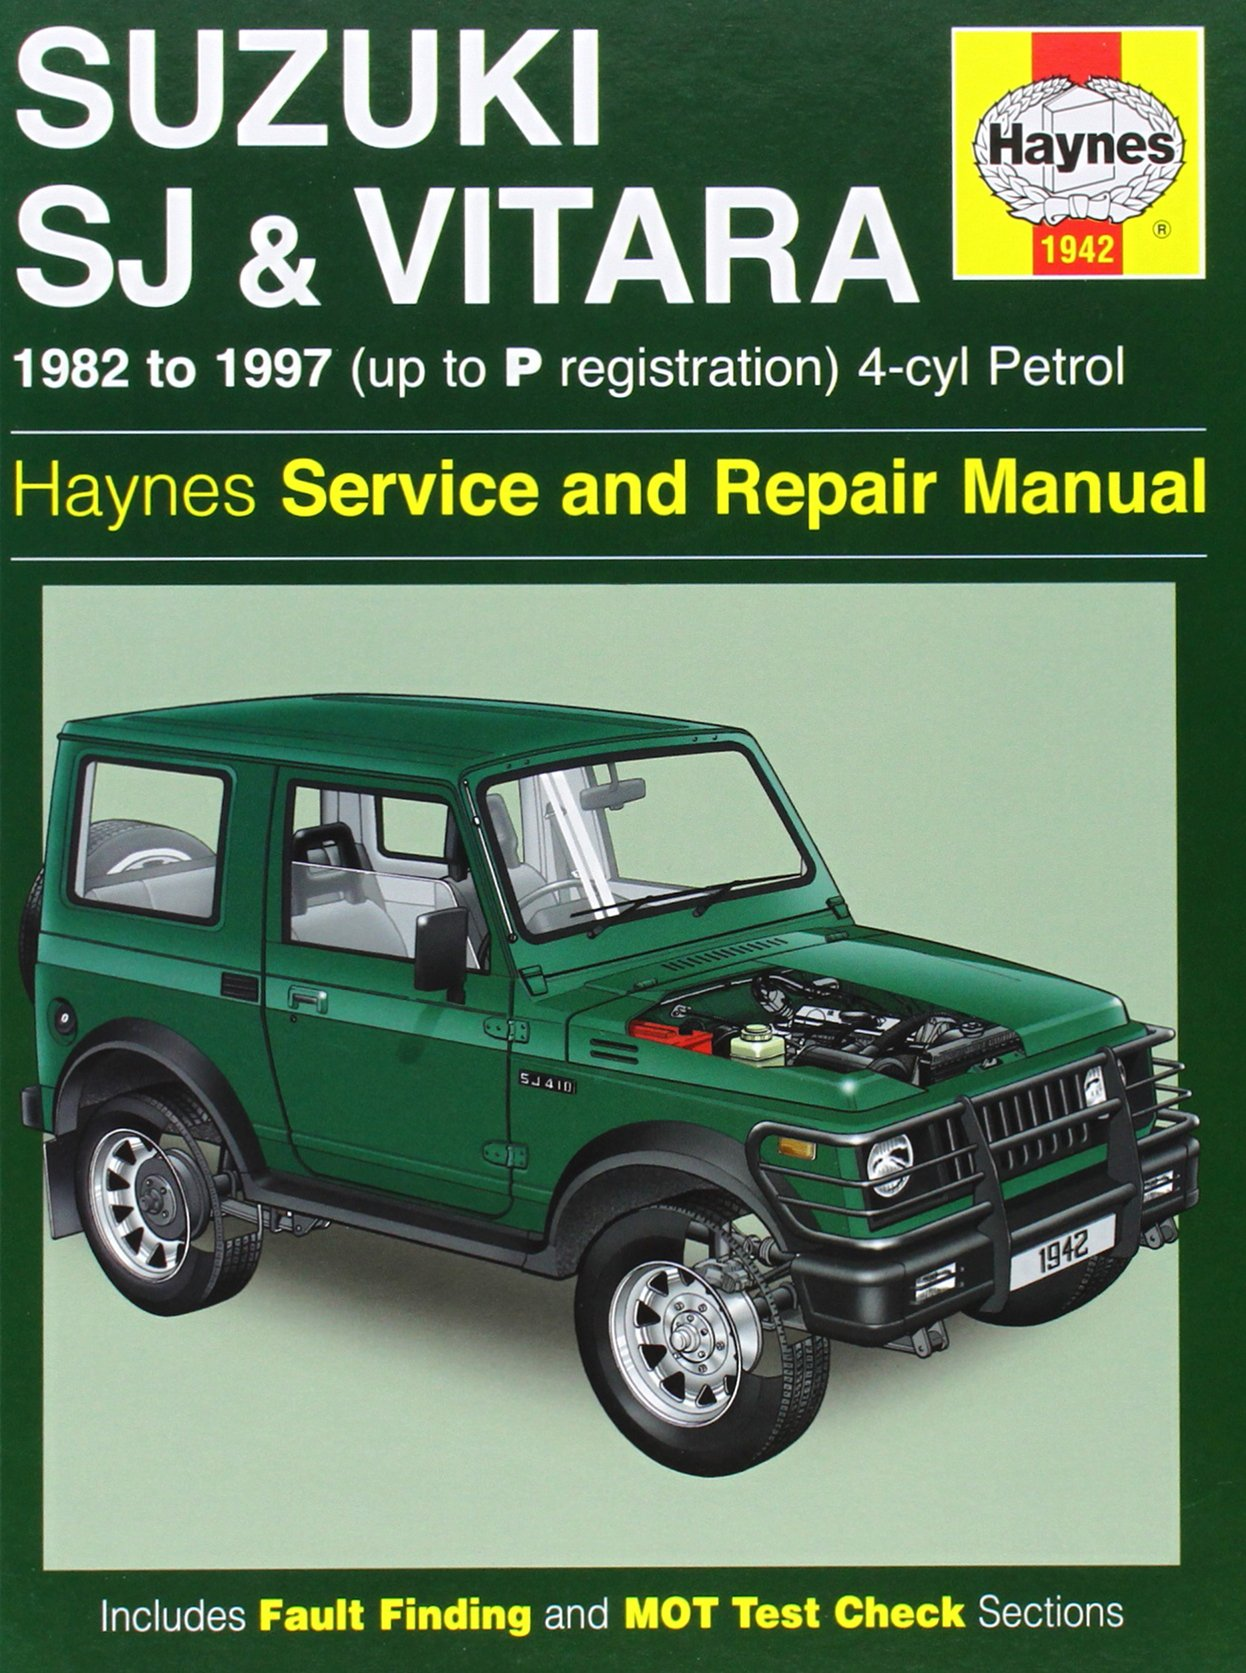 Suzuki manual cam ebook array suzuki sj410 sj413 82 97 and vitara service and repair manual rh amazon com fandeluxe Images